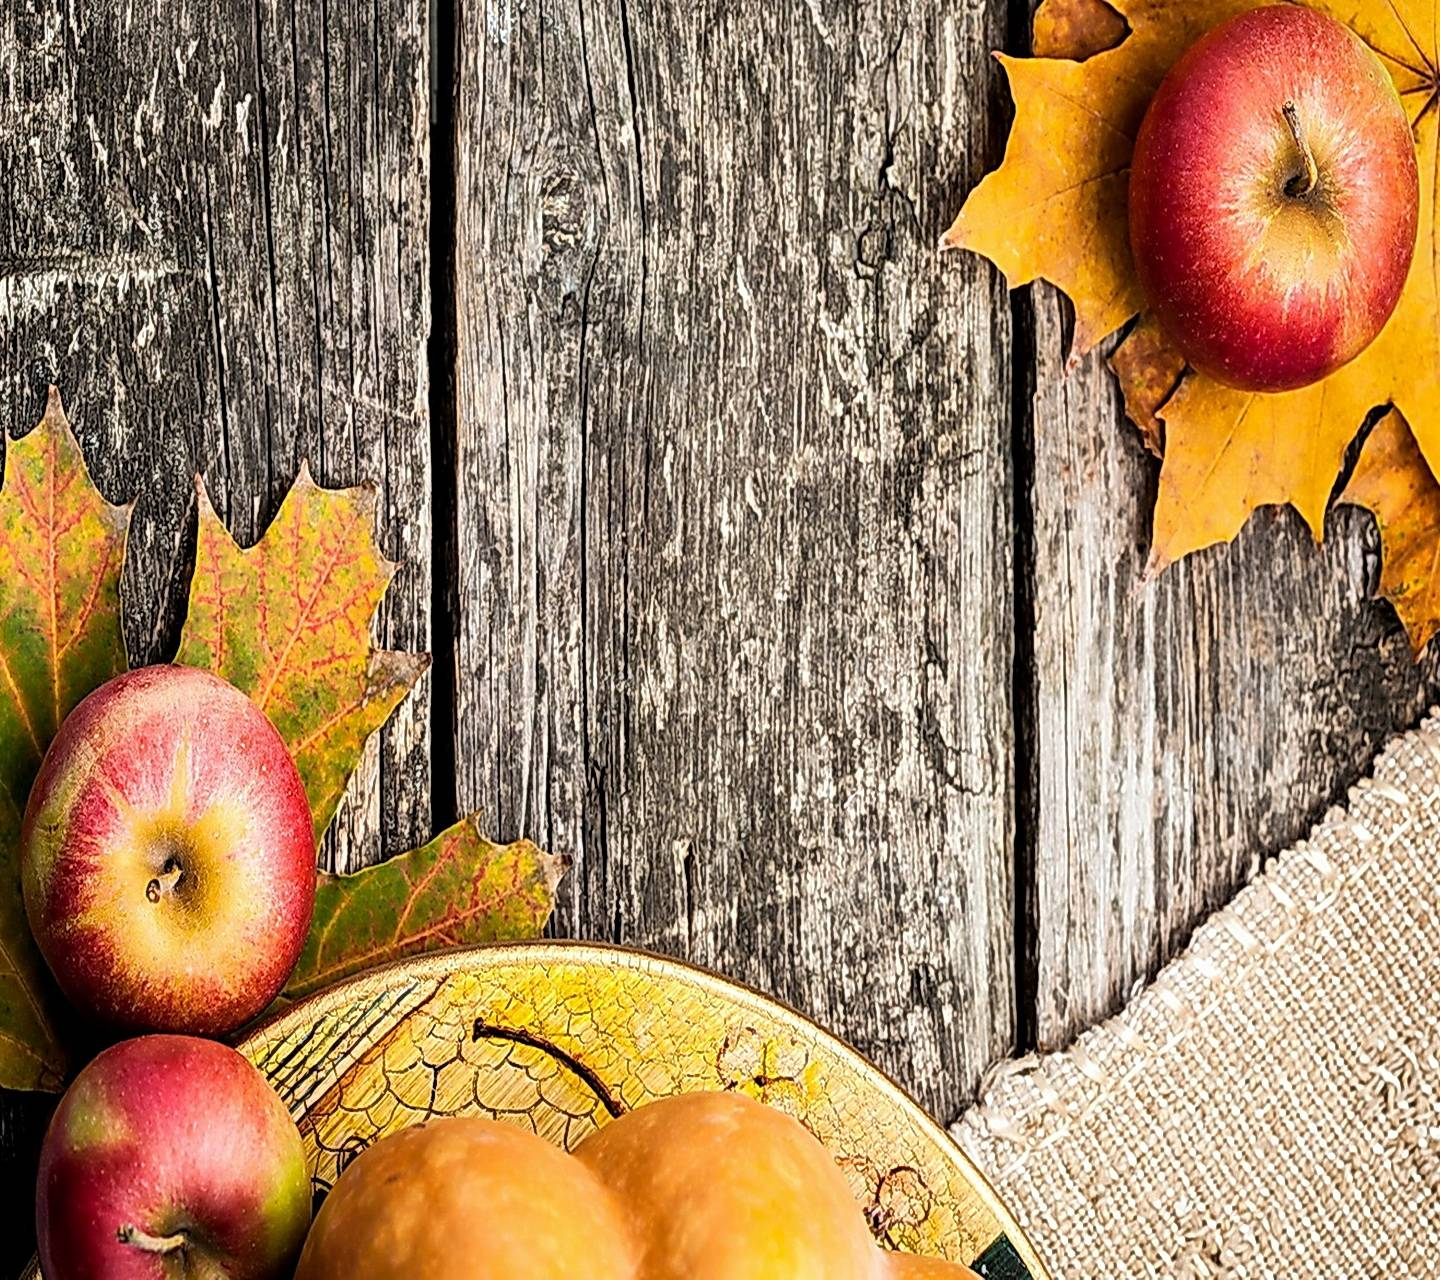 Autumn Apples Wallpaper By Marika 96 Free On Zedge